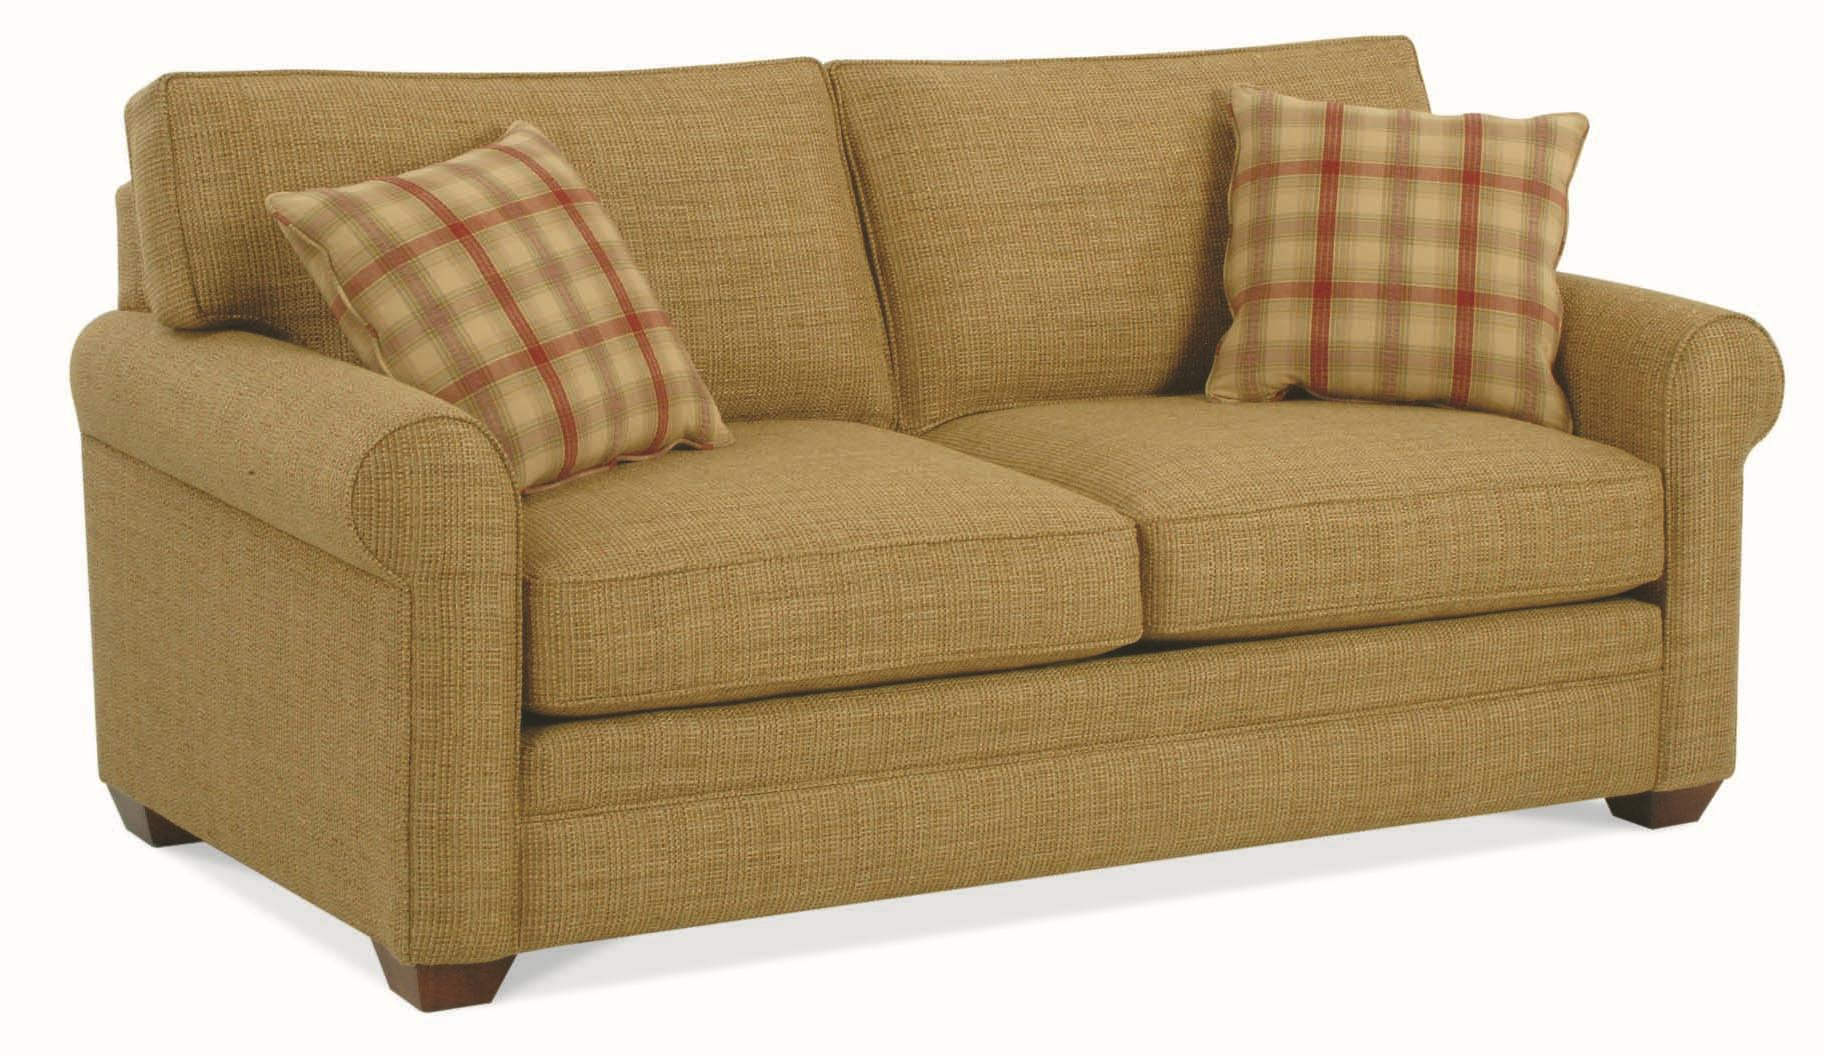 728 2-Seater Loft Sofa by Braxton Culler at Powell's Furniture and Mattress